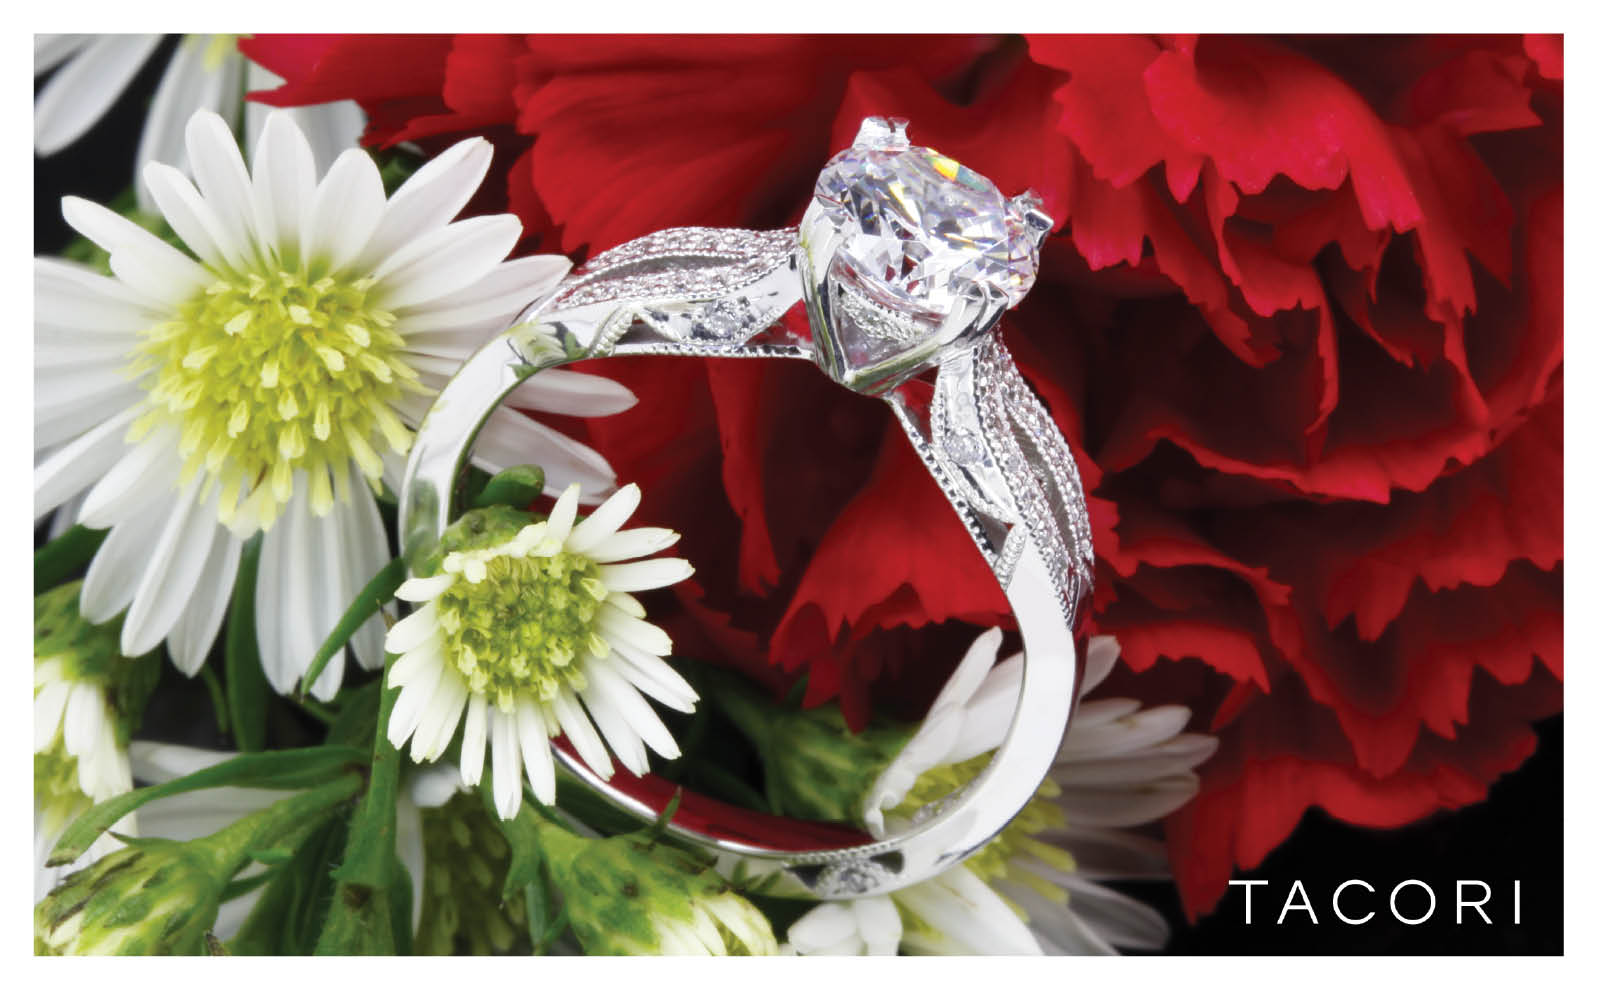 Tacori 2015 Jewelry Calendar Whiteflash